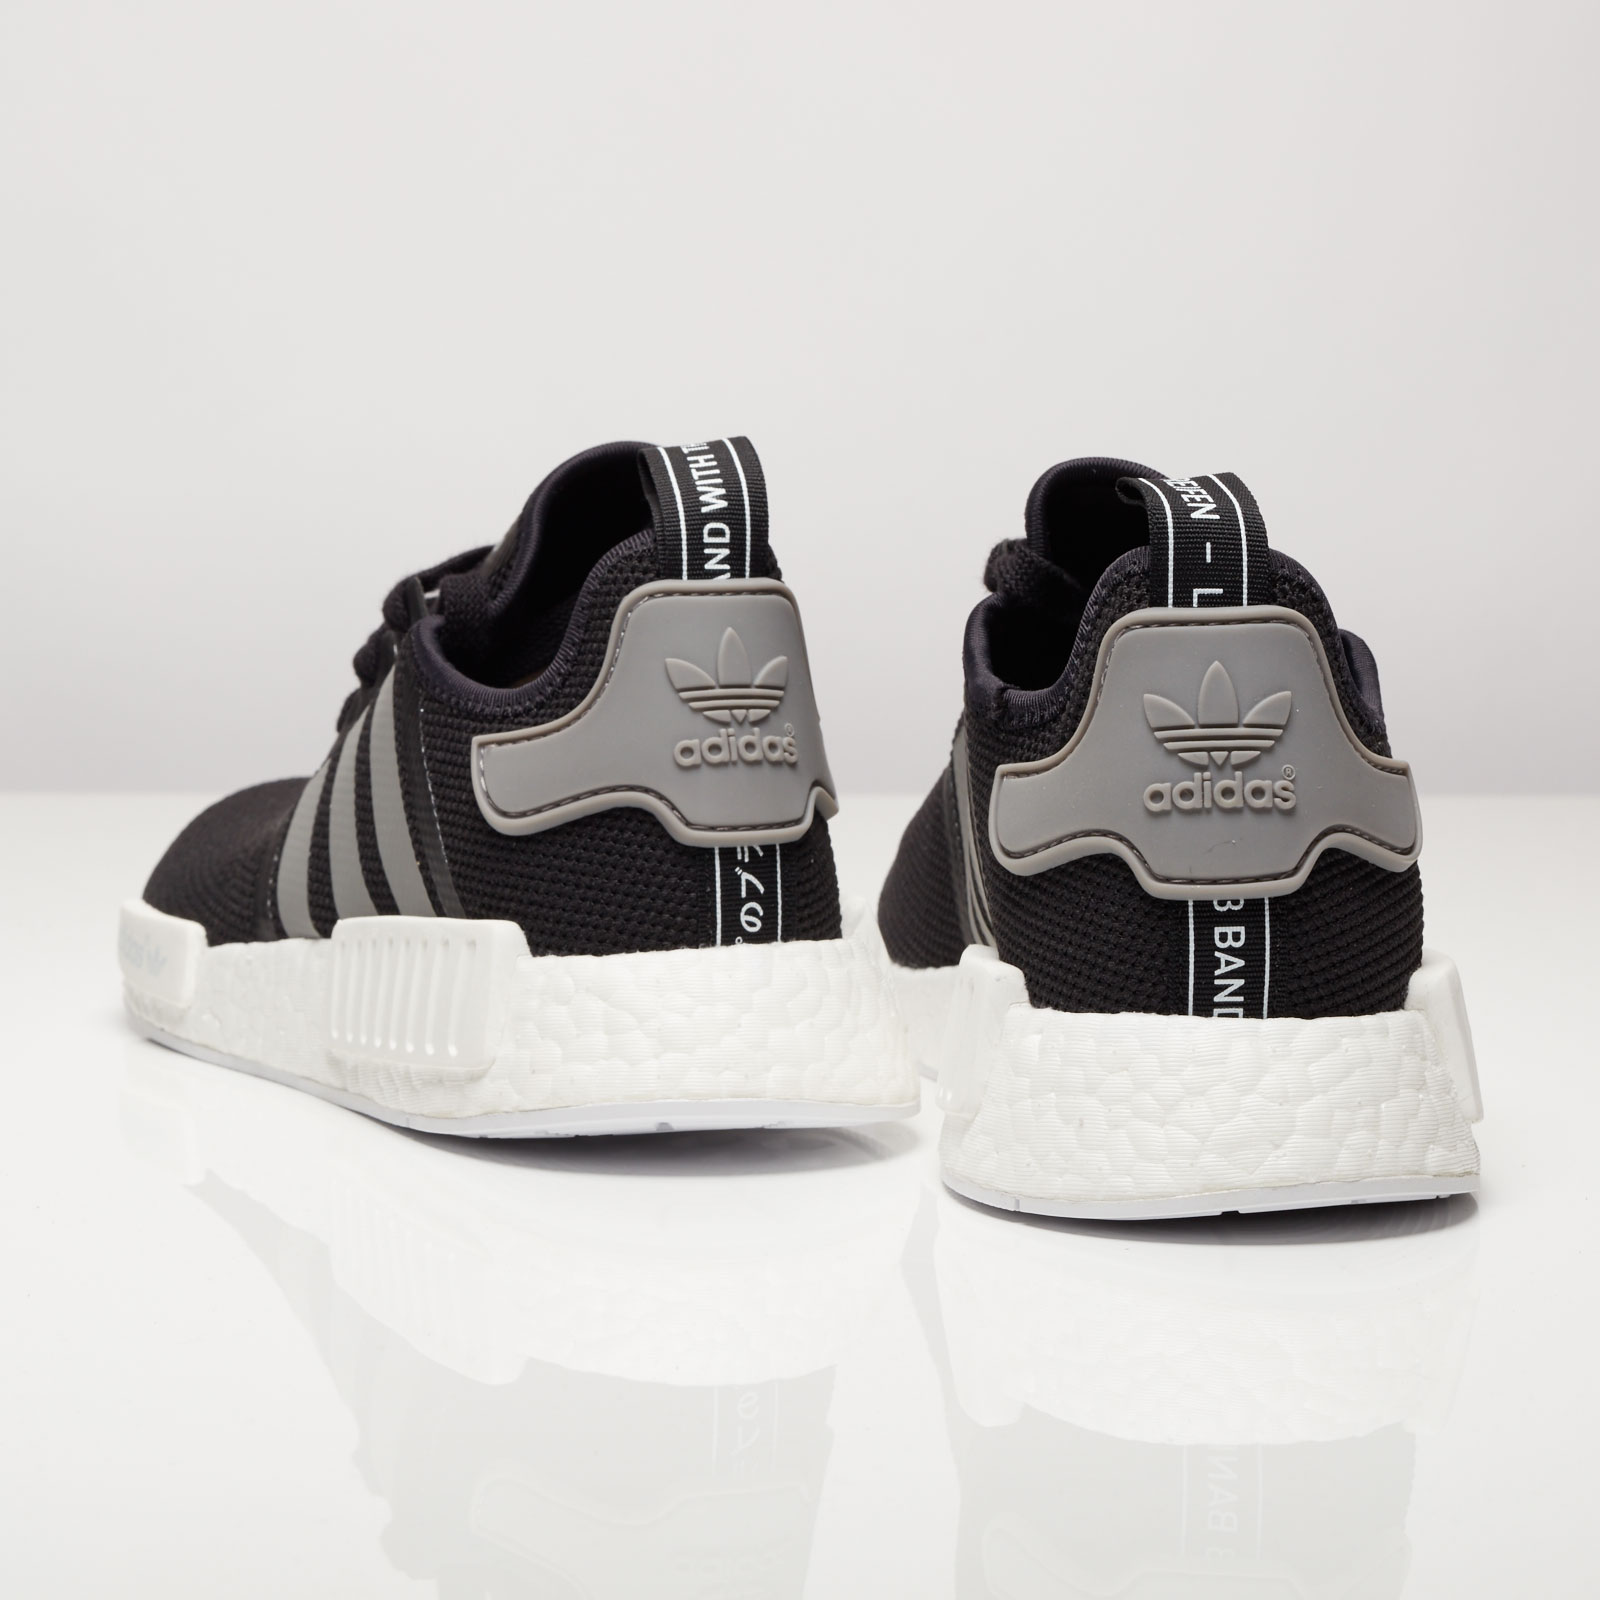 sneakers for cheap 14d86 77af5 adidas NMD_R1 - S31504 - Sneakersnstuff | sneakers ...